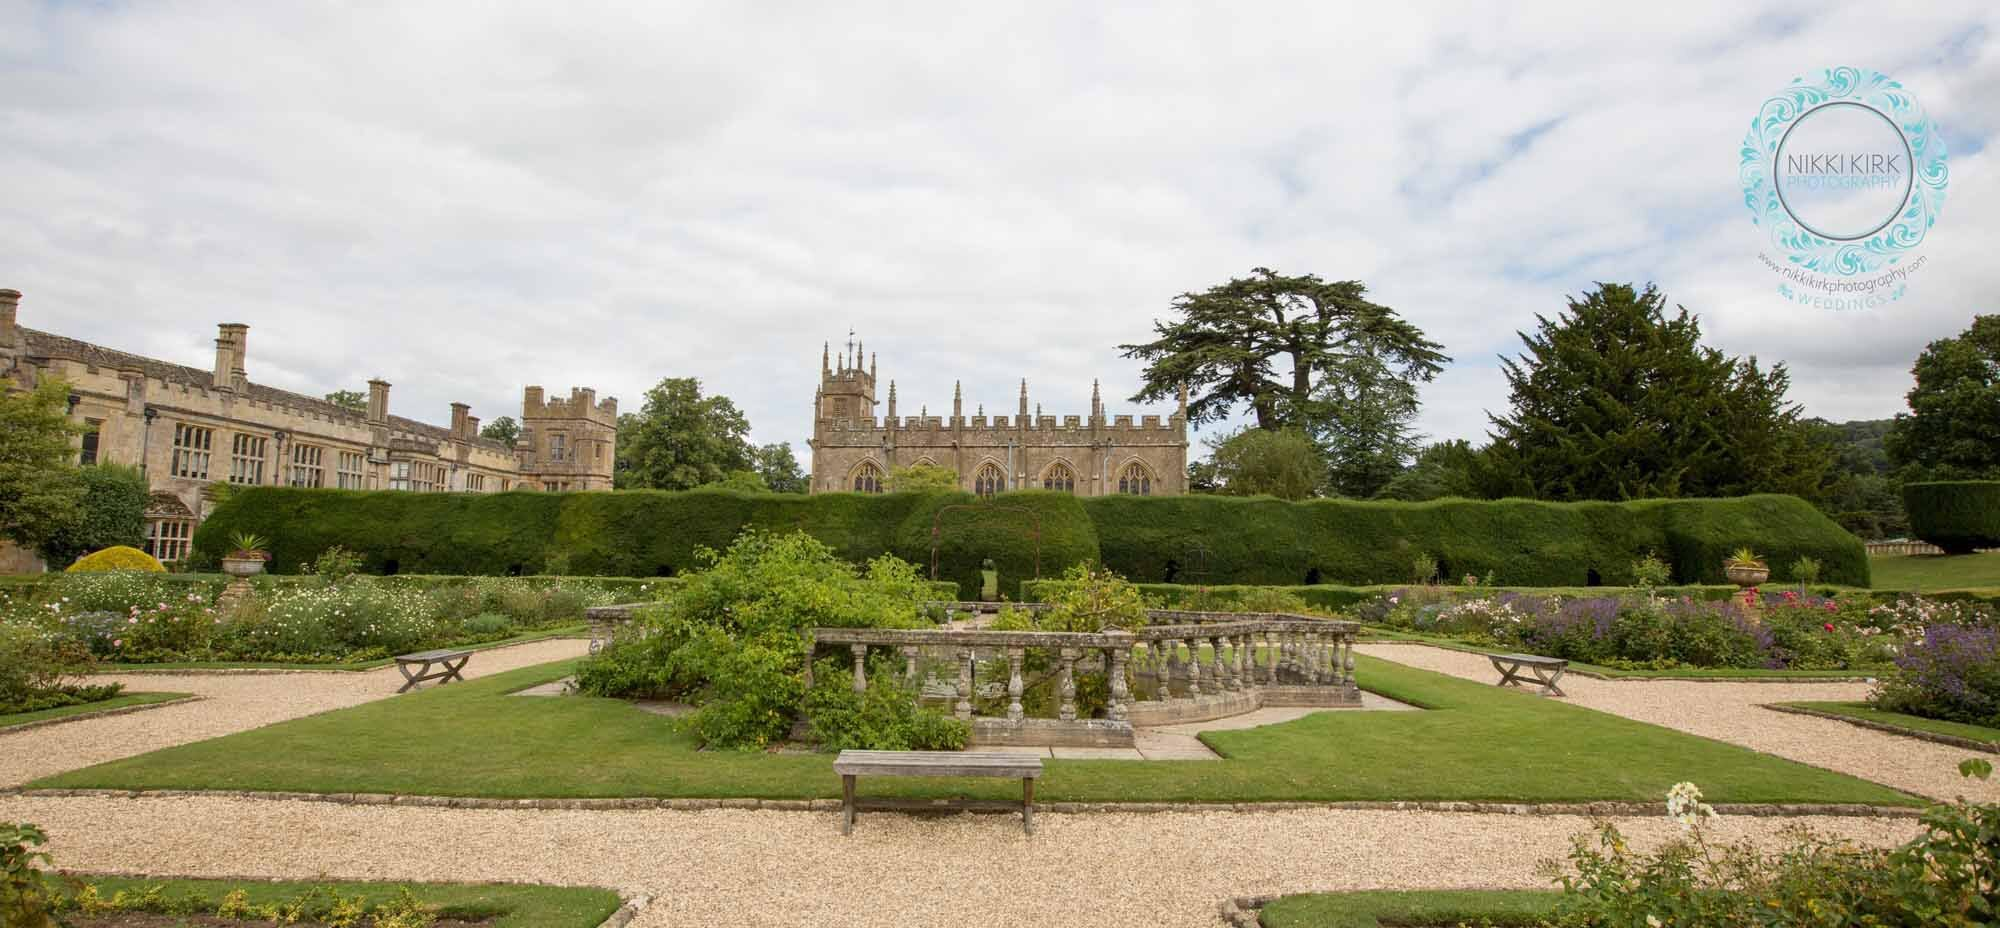 Sudeley-Castle-Cotswolds-婚礼奖-获奖-婚礼策划师-Perfection-06a.jpg